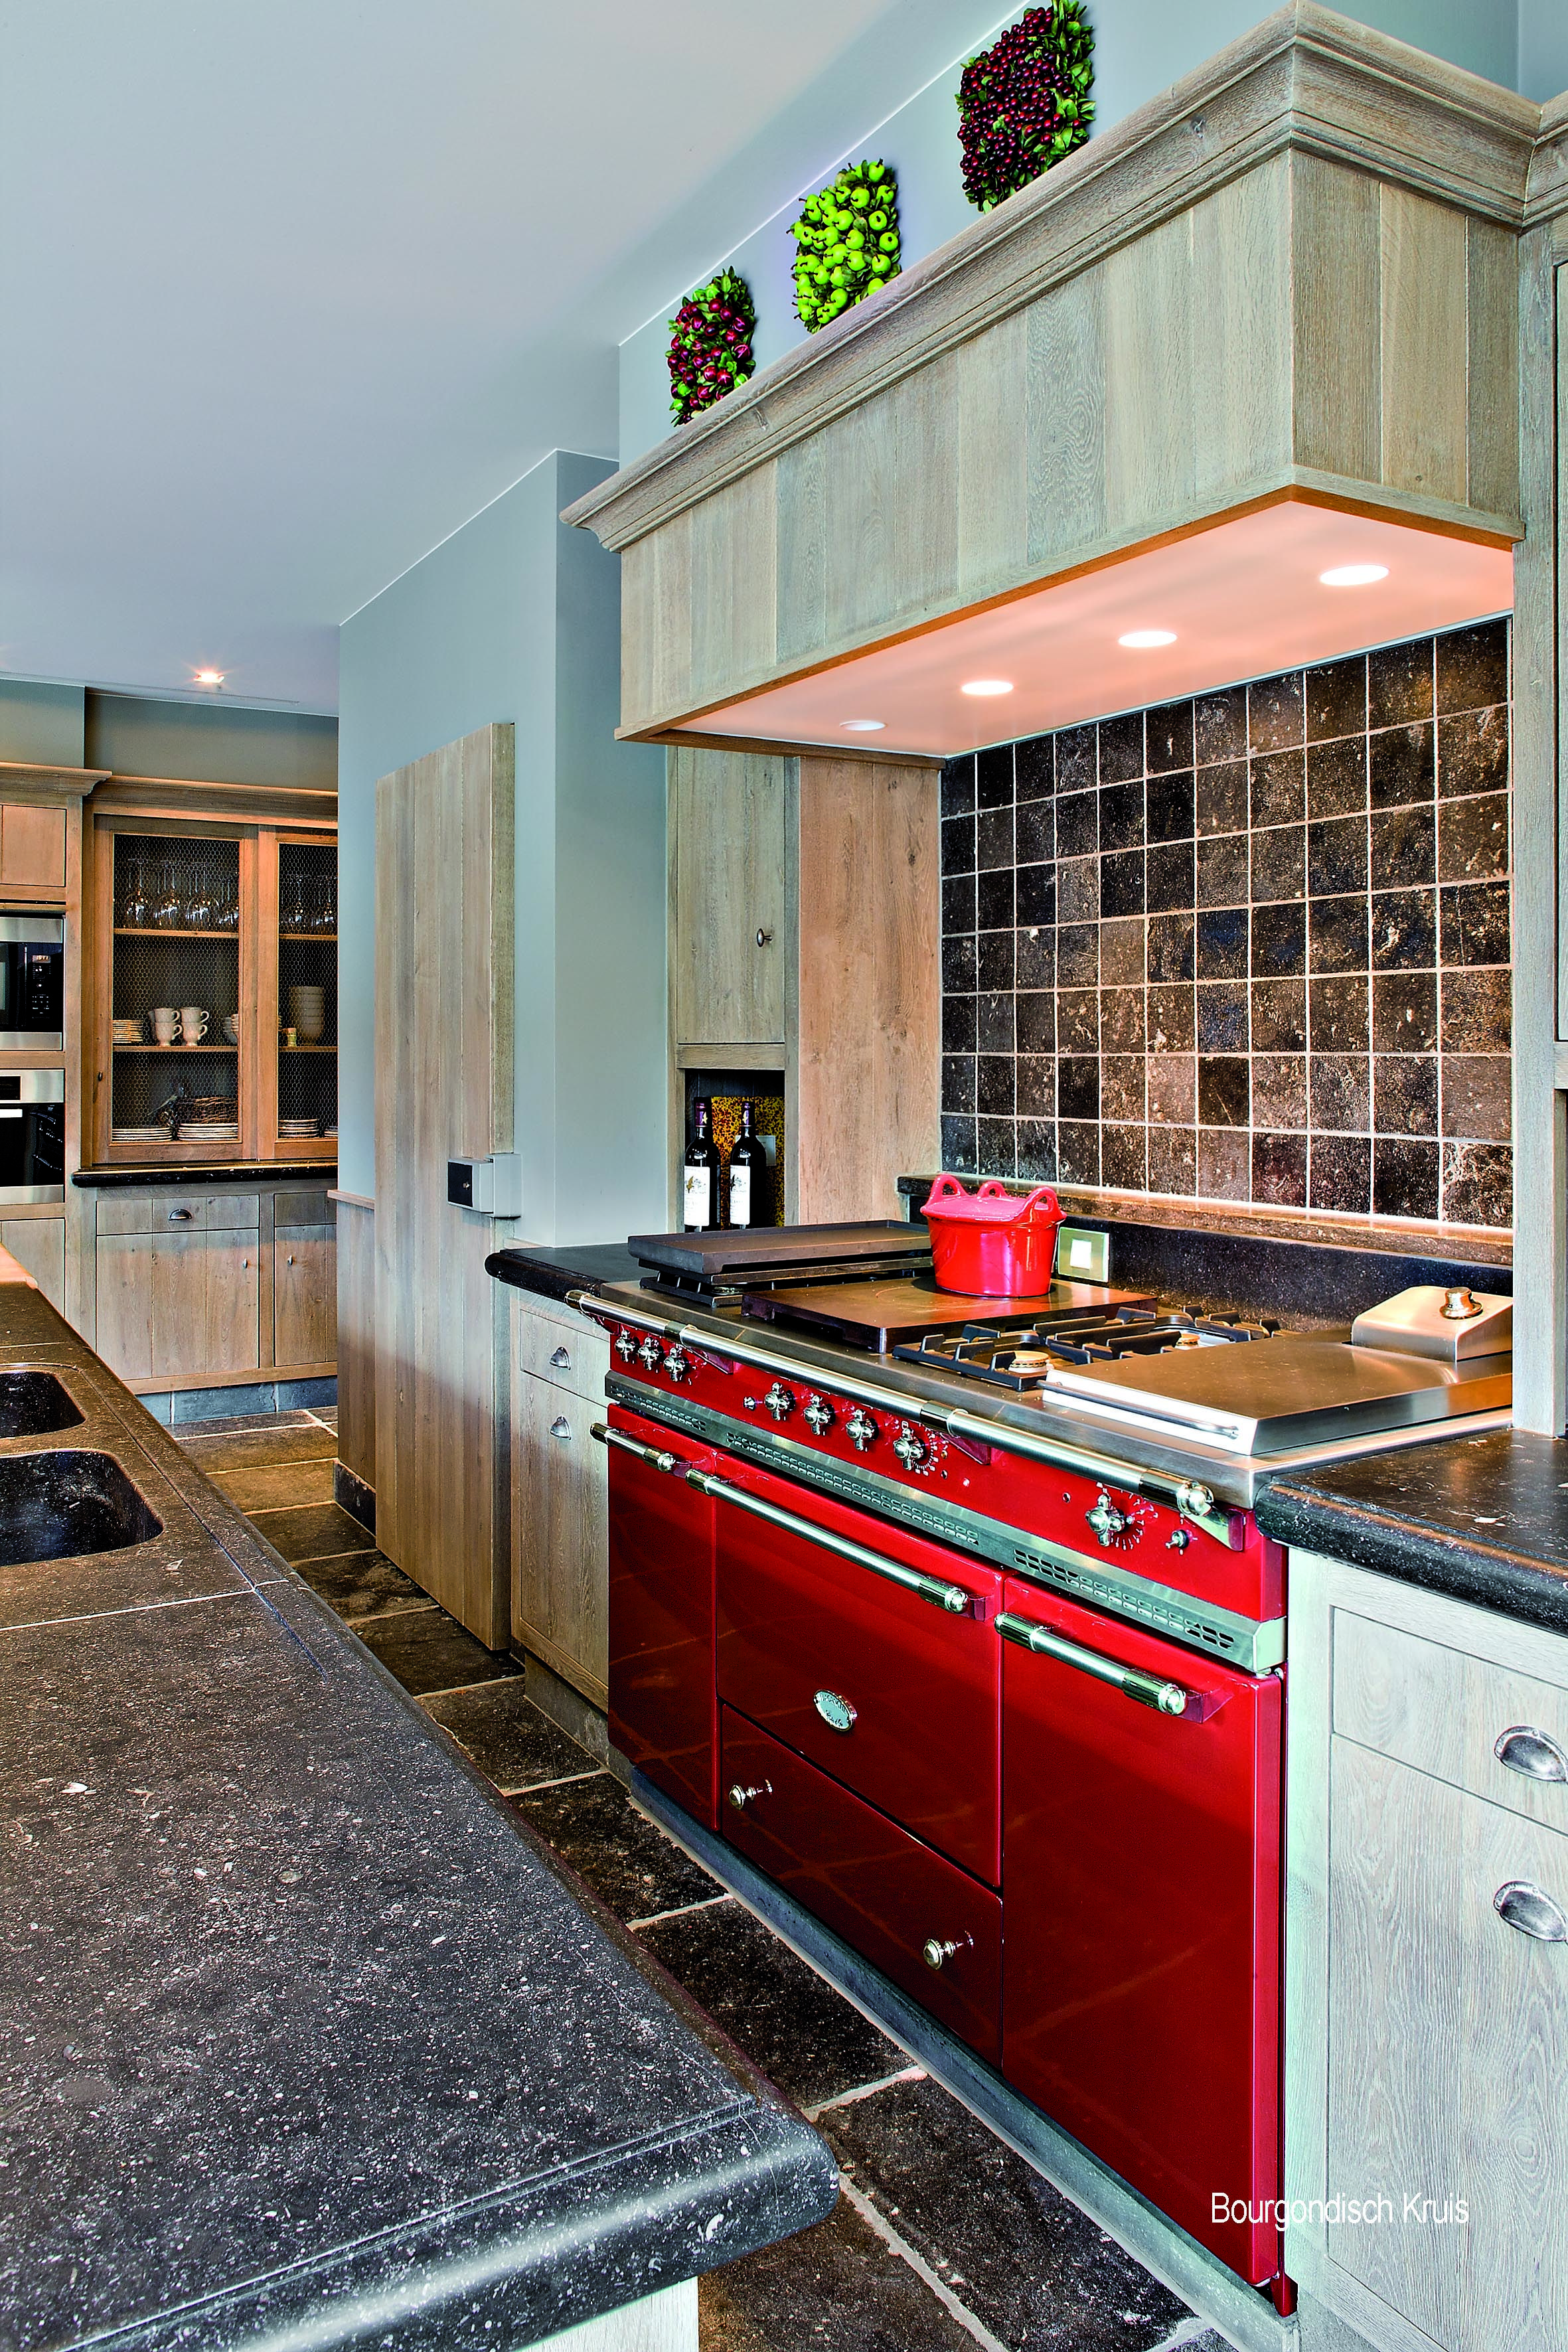 60 lacanche citeaux range in cherry red featuring 2 ovens gas and convection electric and a. Black Bedroom Furniture Sets. Home Design Ideas